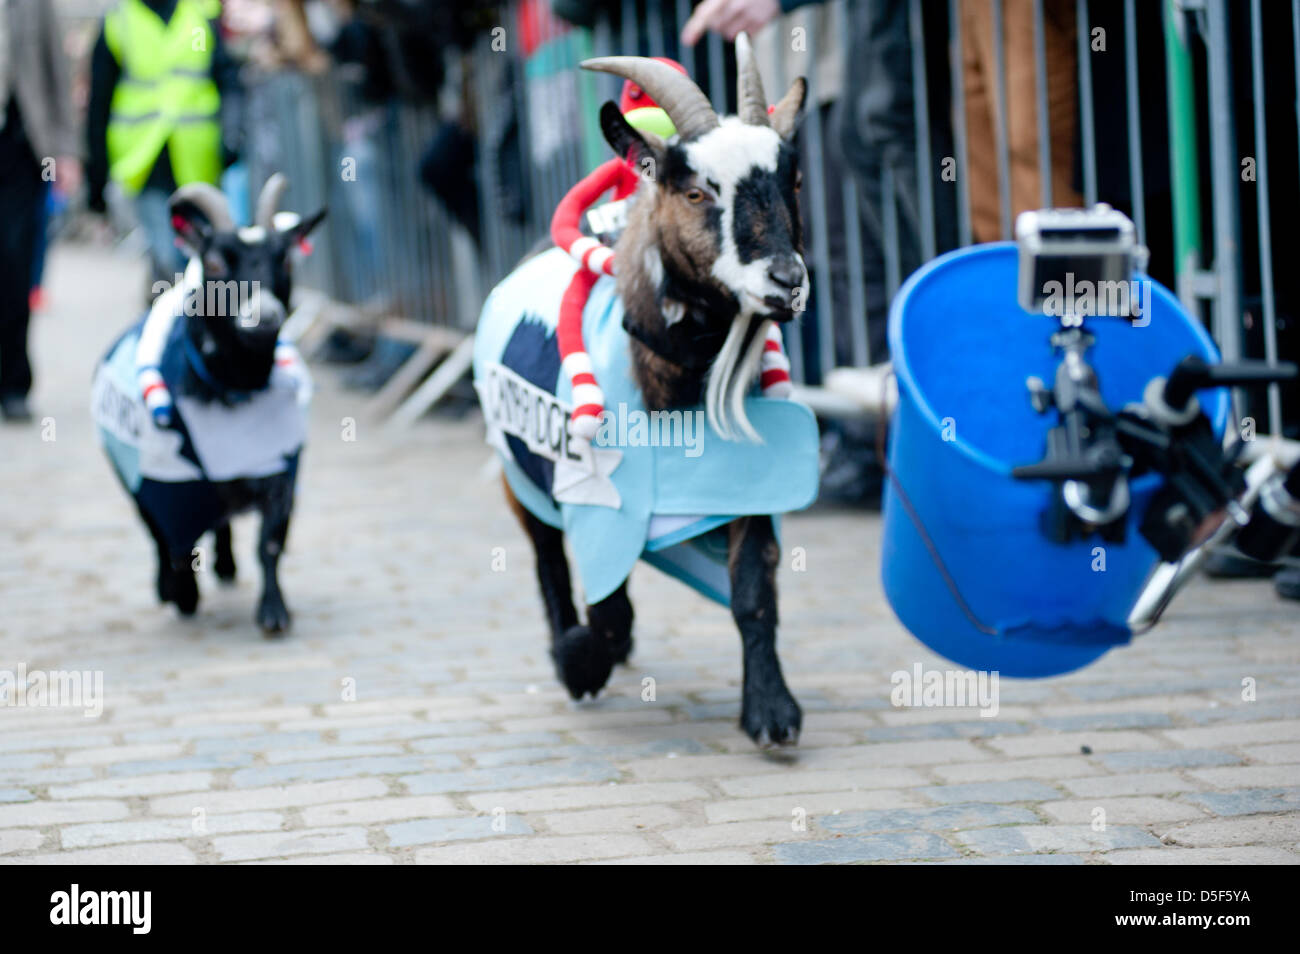 London, UK - 31 March 2013: Cambridge and Oxford Goats follow food during the the 5th Annual Oxford and Cambridge - Stock Image